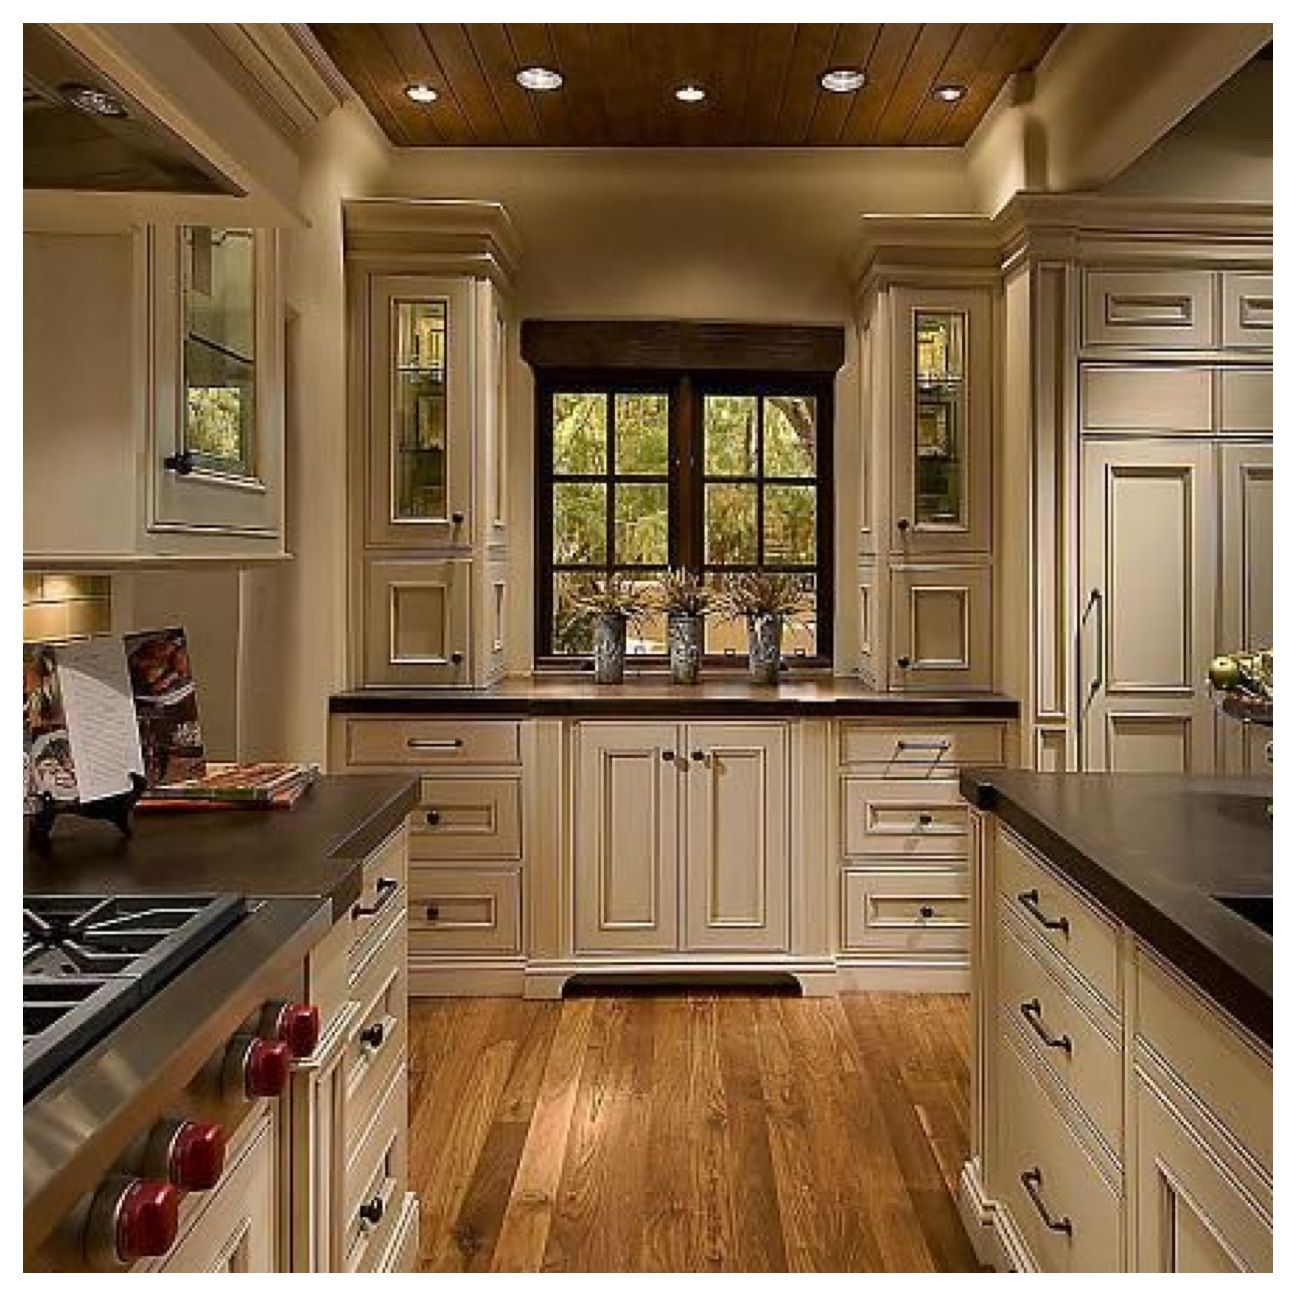 Cream kitchen cabinets - Kitchens With Cream Cabinets Wood Floor Cream Cabinet Kitchen